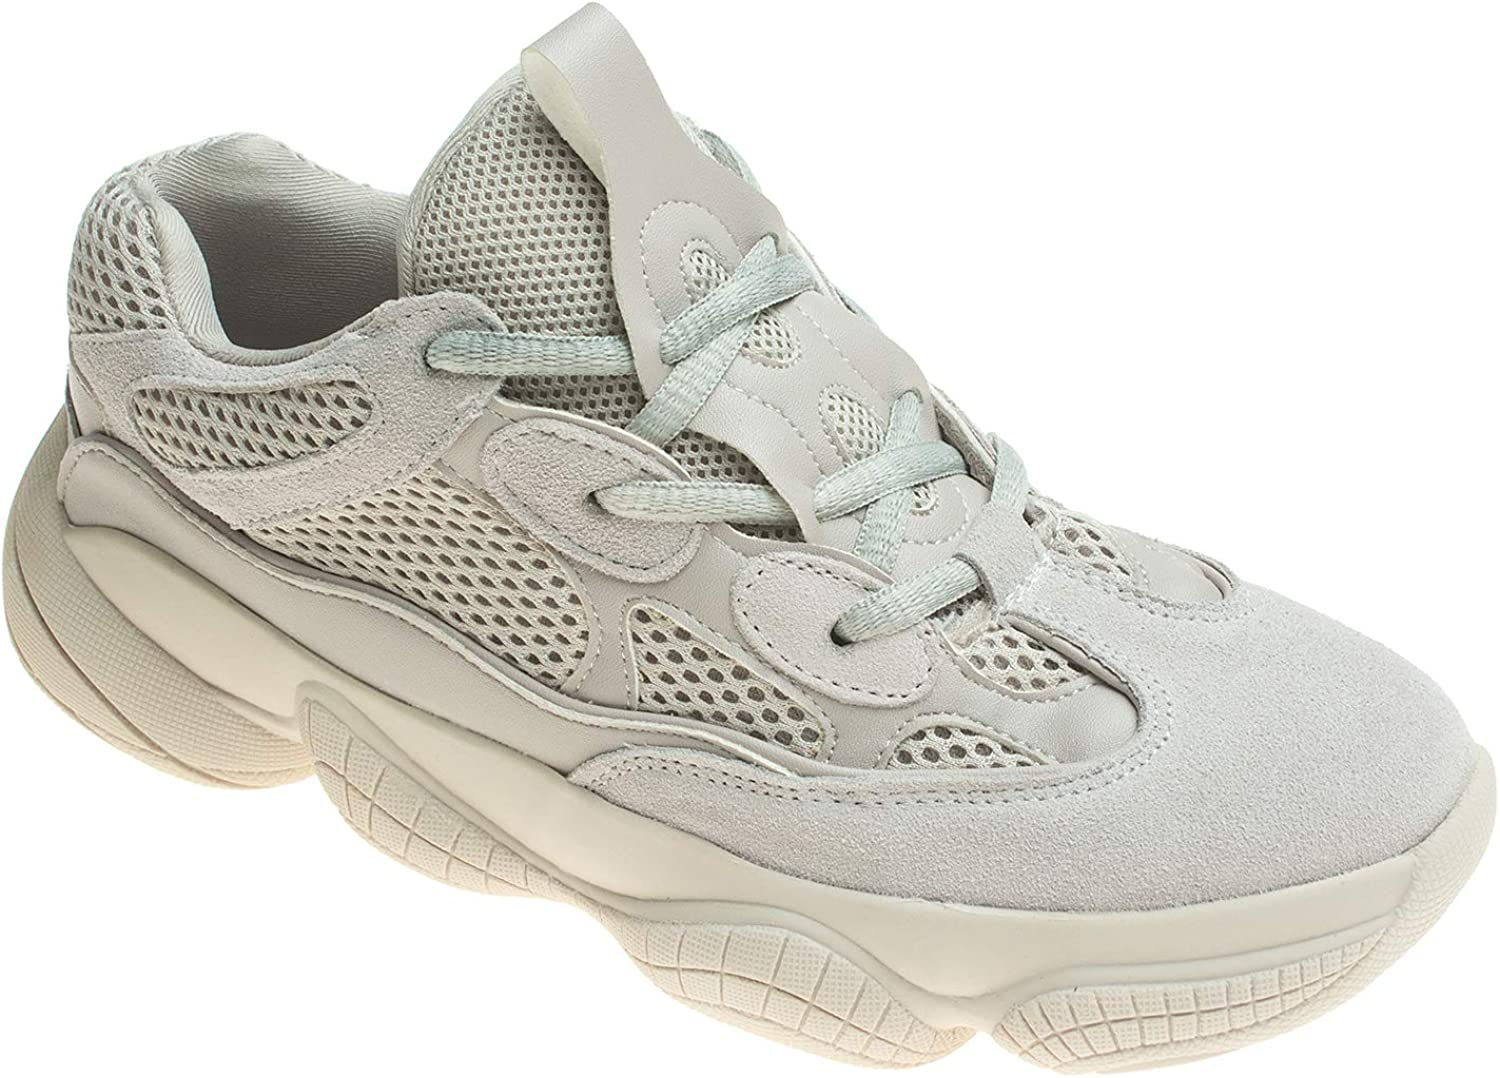 AnnaKastle Womens Oversized Rubber Sole Chunky Fashion Sneaker Trainer